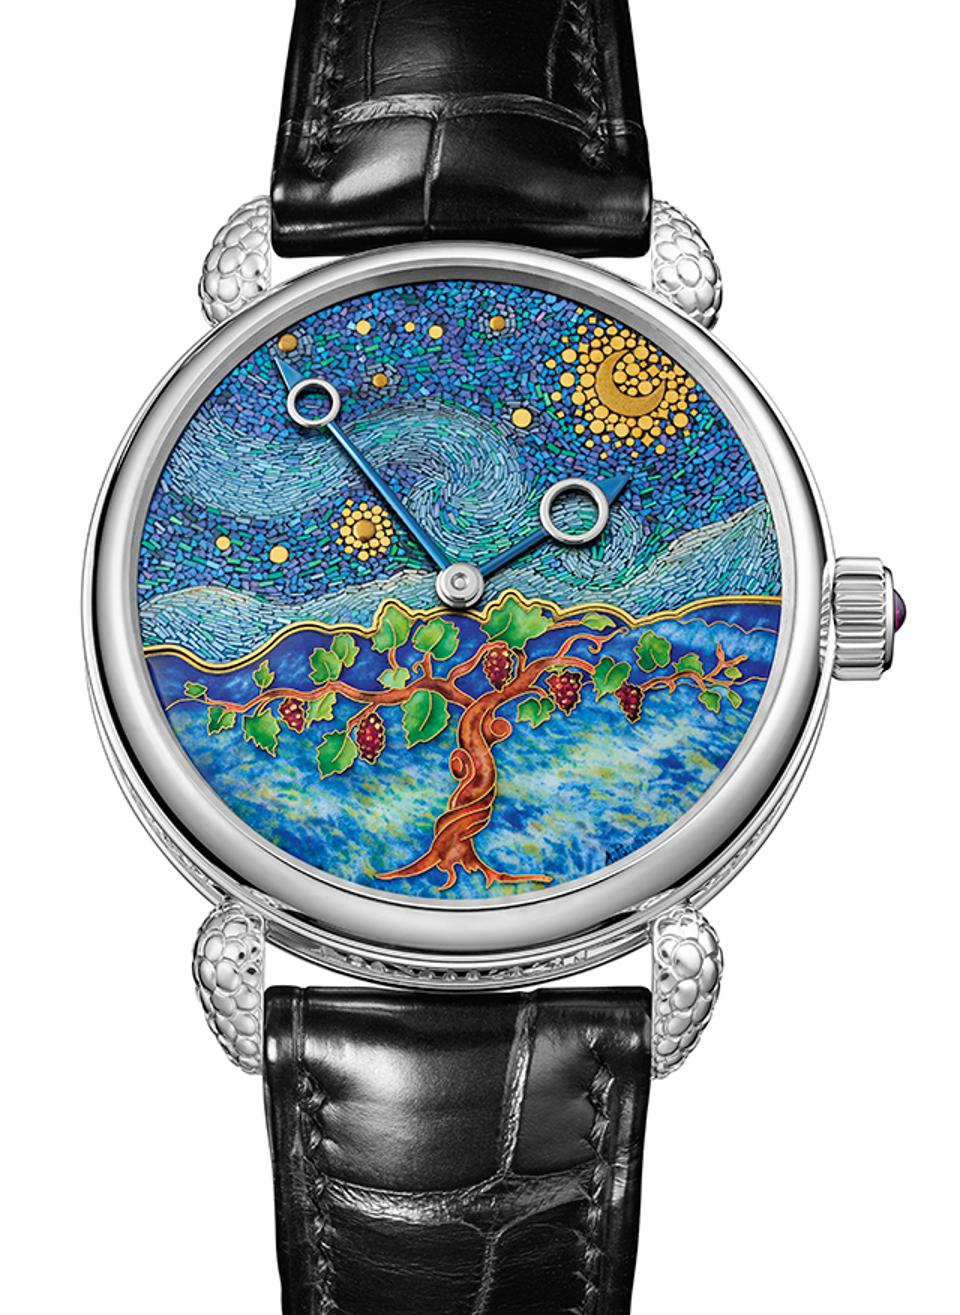 Voutilainen won the Artistic Crafts prize for his Starry Night Vine, with a Japanese lacquer and cloisonné enamel dial depicting a landscape.